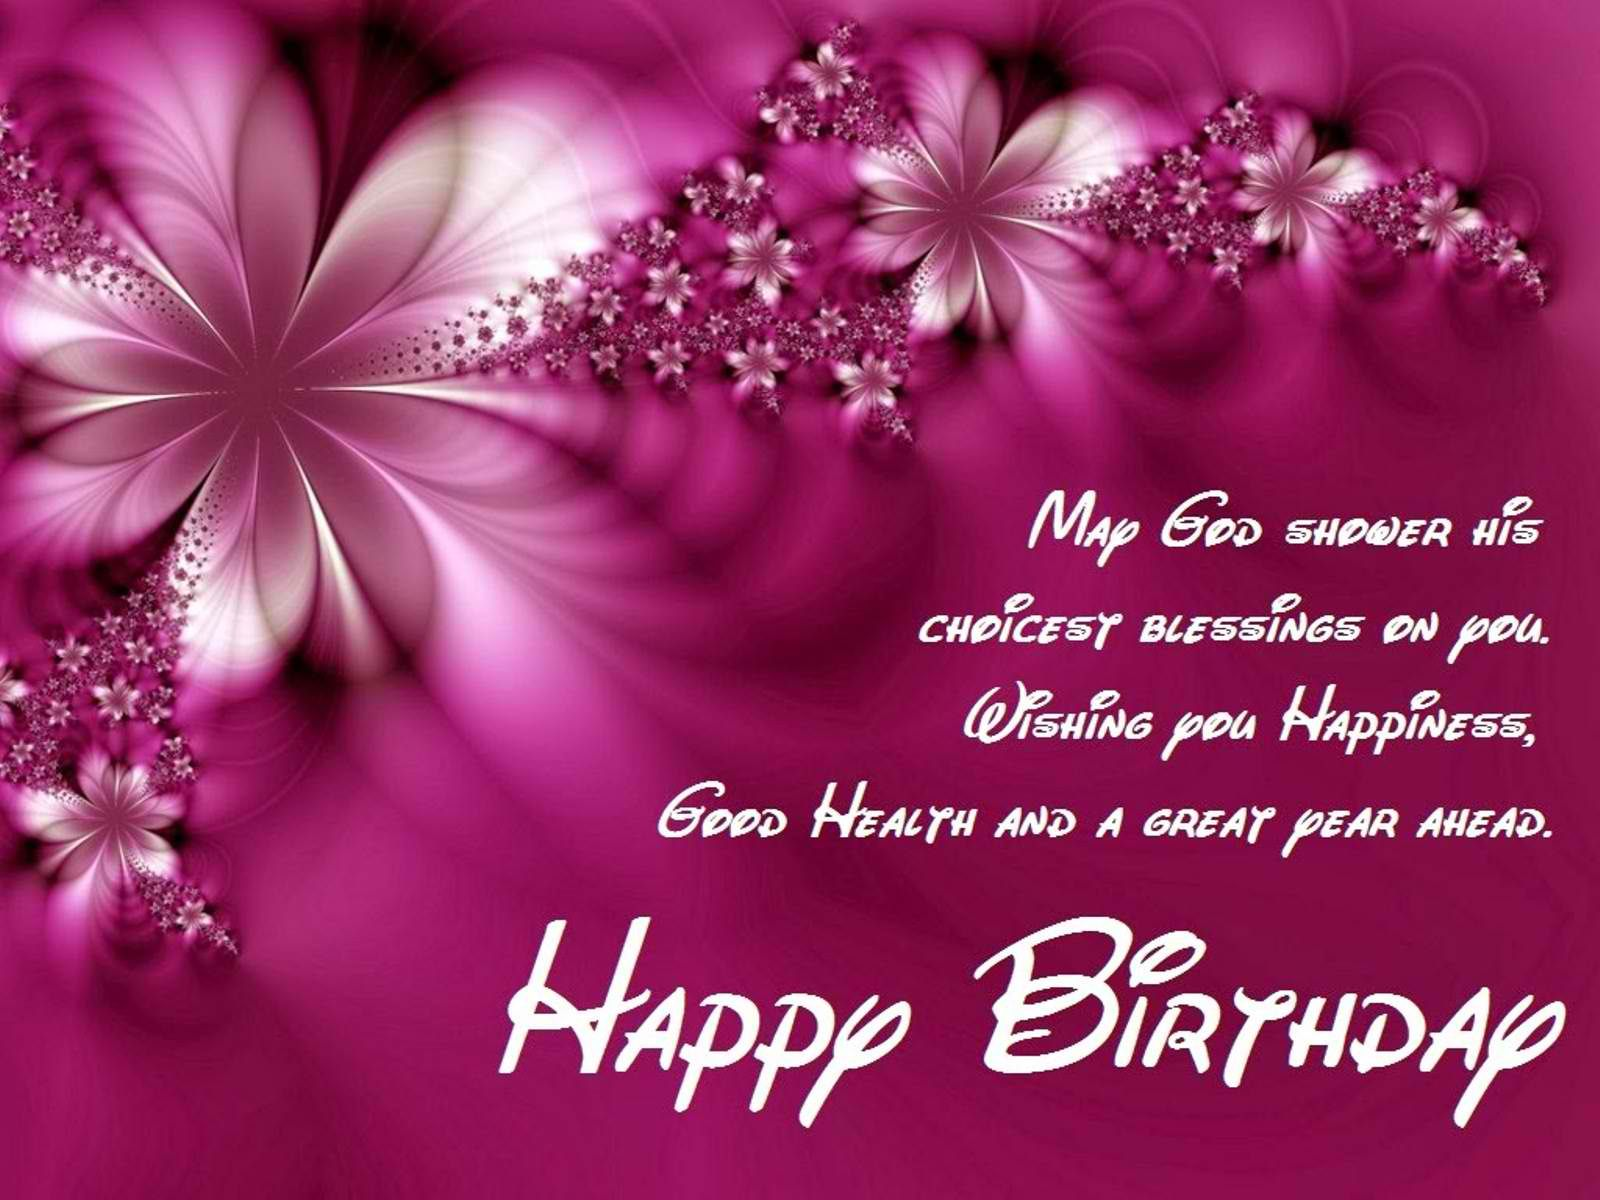 Lord Jesus Bless You Birthday Wishes, Quotes And Messages With Pictures Greetings  Wallpapers Download   Birthday Wishes Quotes   Happy Birthday Images, ...